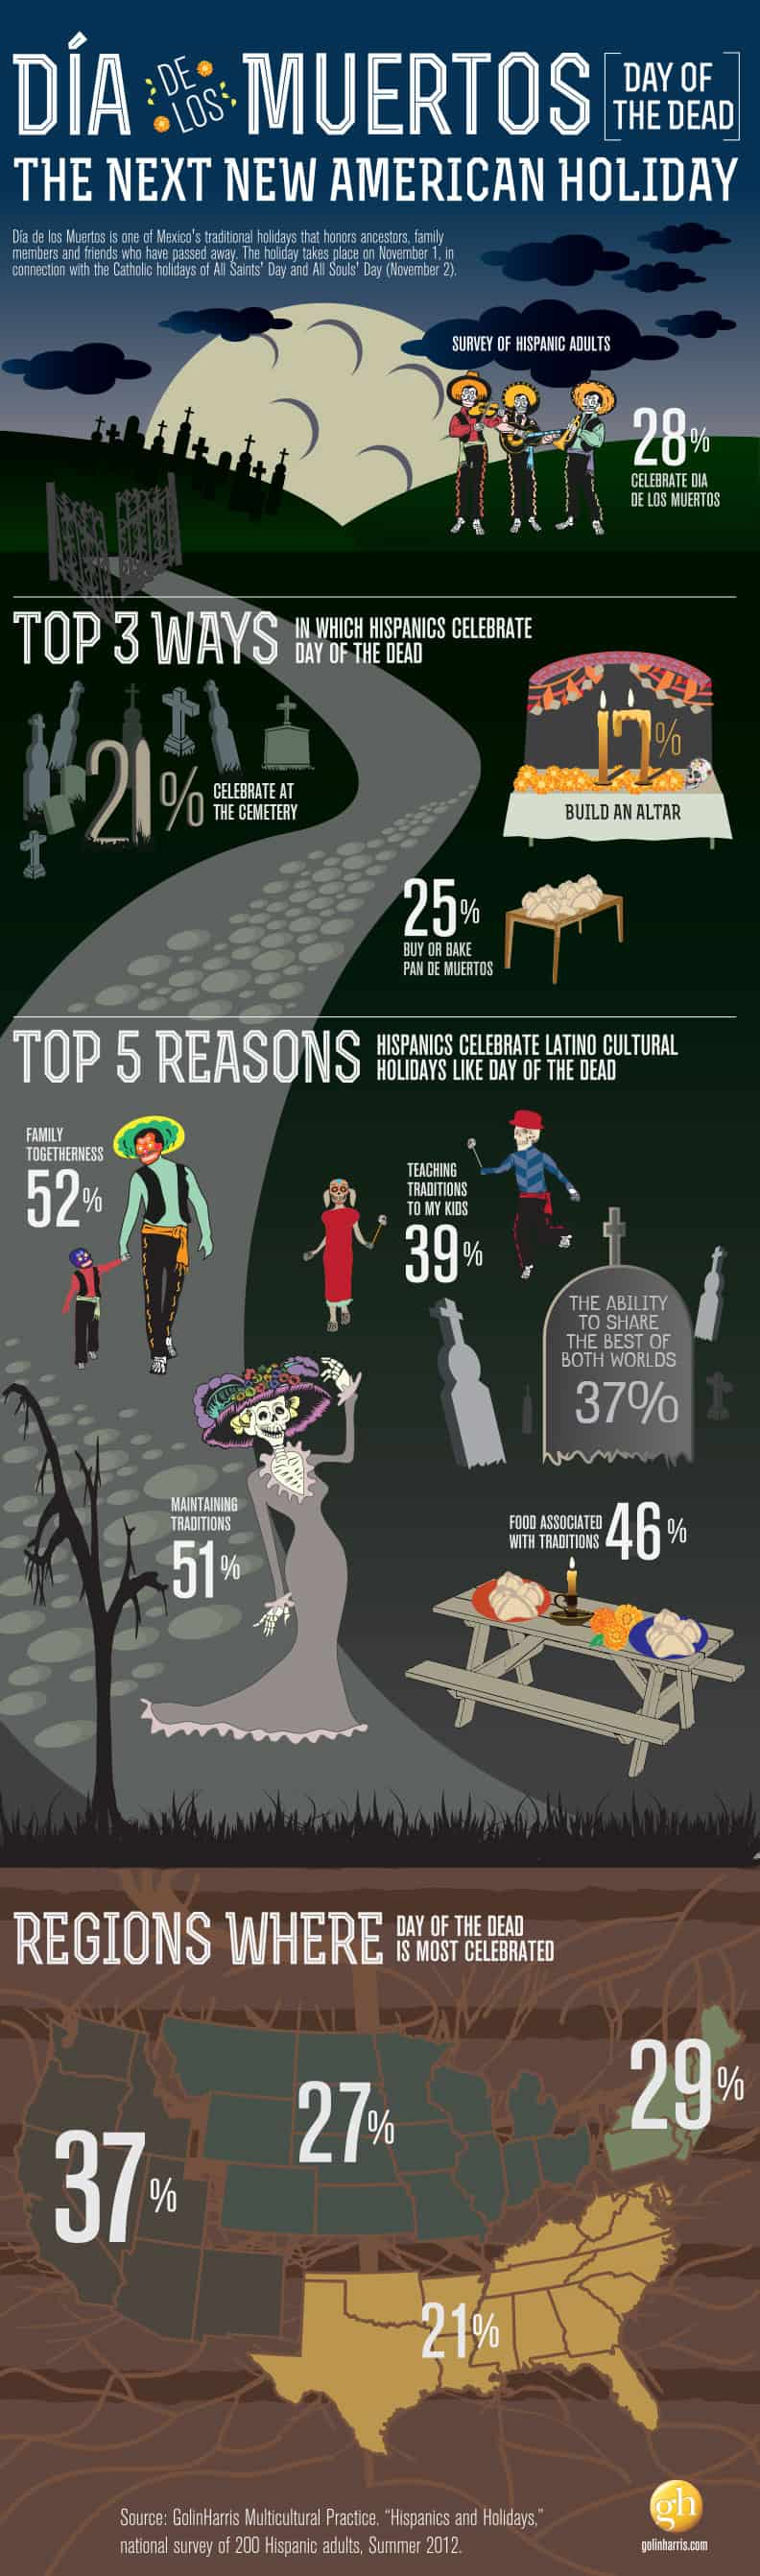 Who celebrates Day of the Dead in the United States? A 2012 survey of Hispanic adults revealed that 28 percent said the celebrated the holiday, with most of them going to a cemetery, building an altar or buying or baking pan de muerto in honor of loved ones who have passed. See more statistics on this Mexican holiday on theothersideofthetortilla.com.